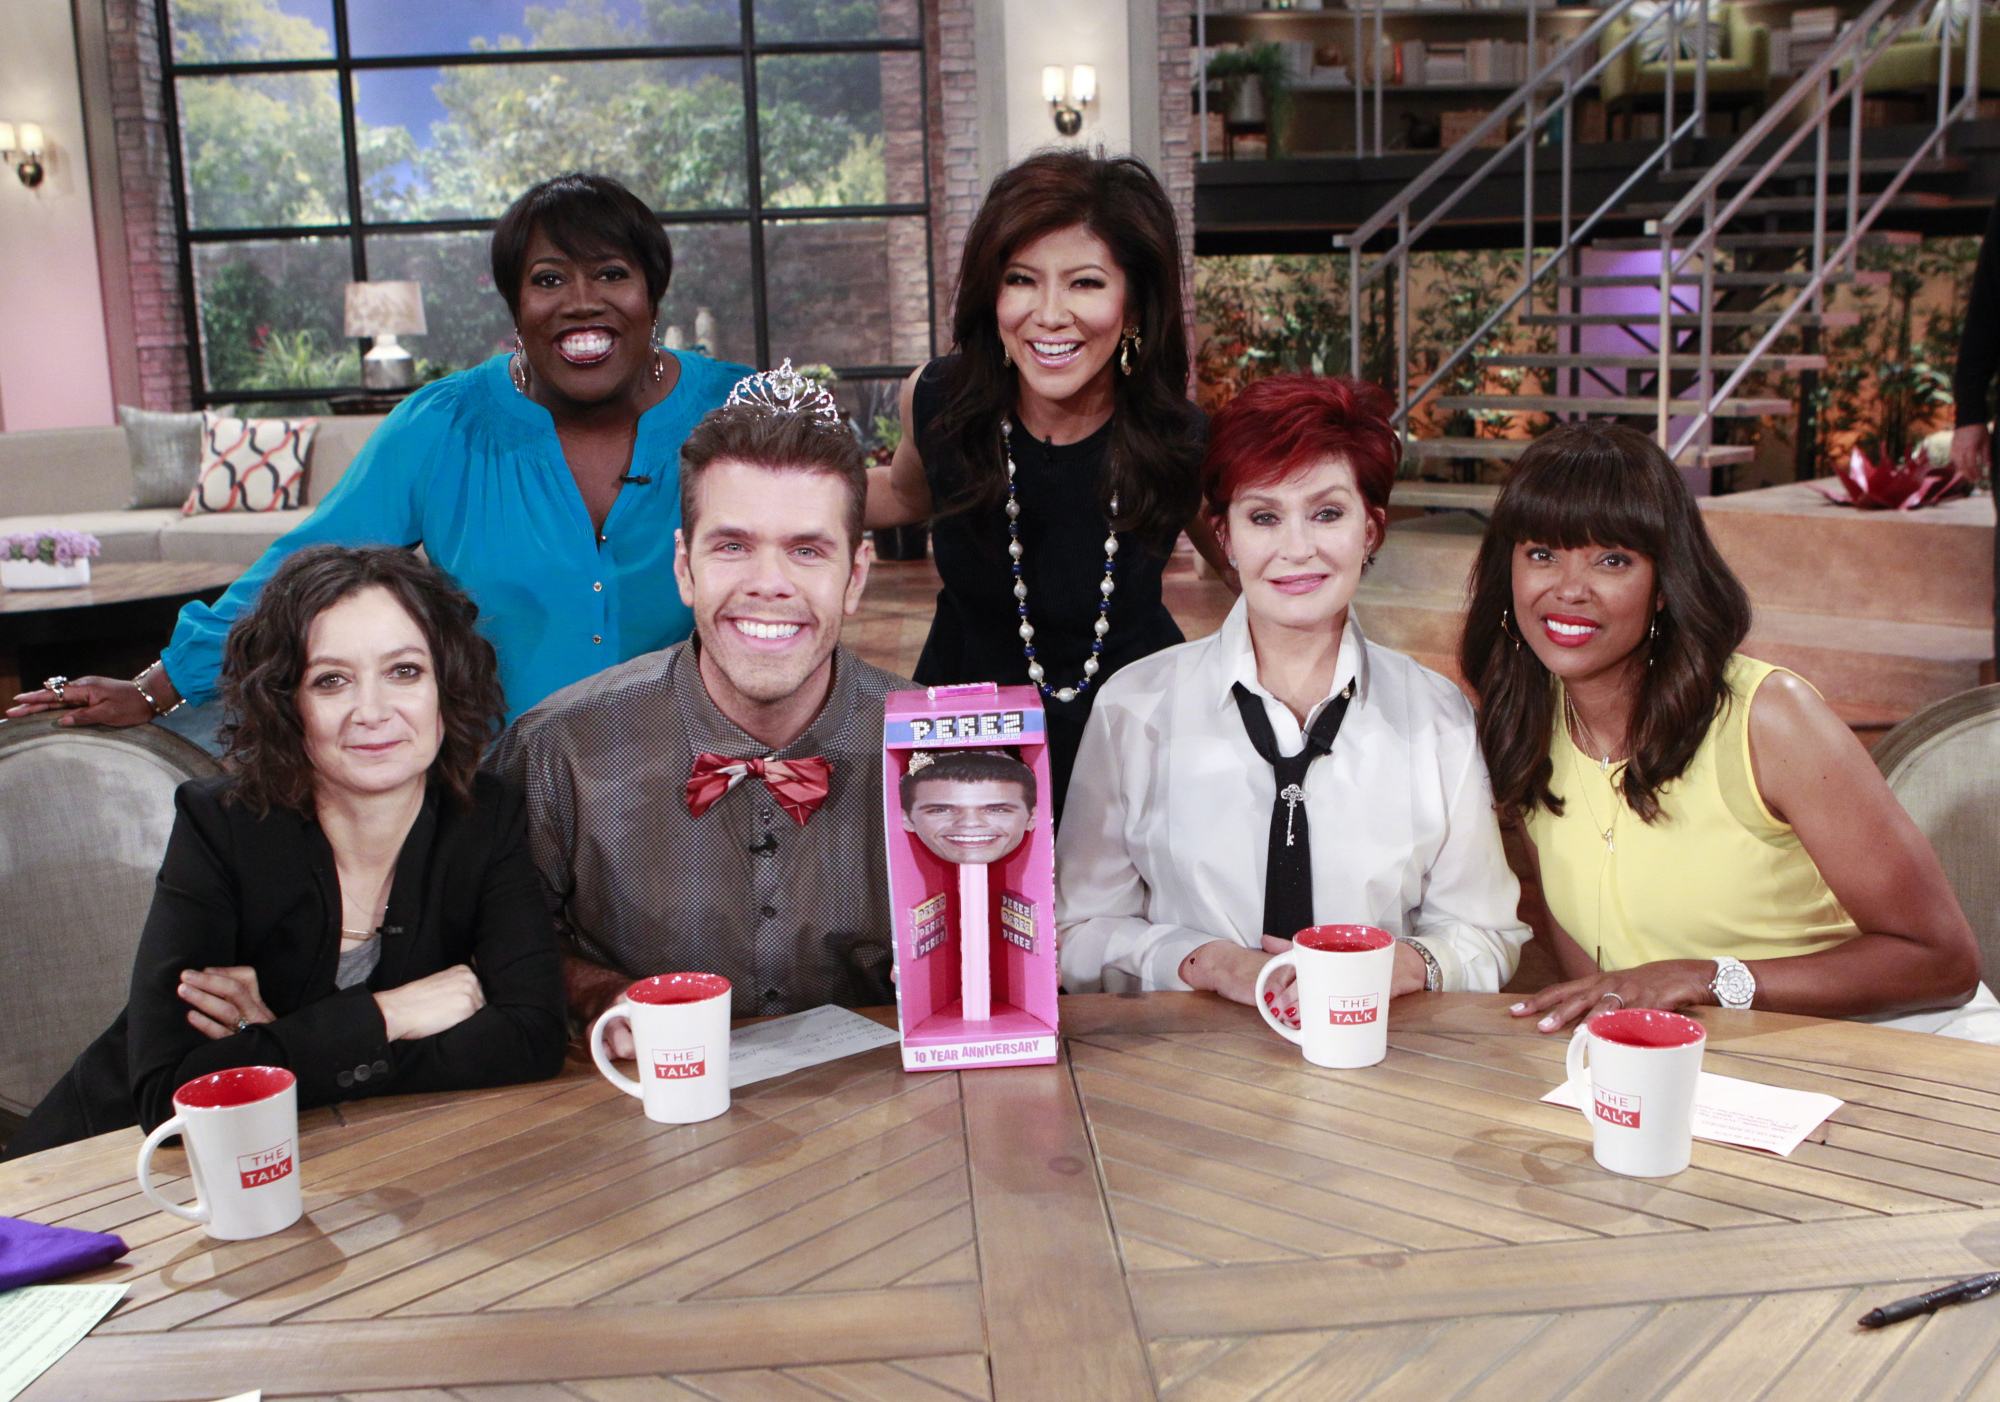 4. The ladies dishing with celebrity blogger Perez Hilton.